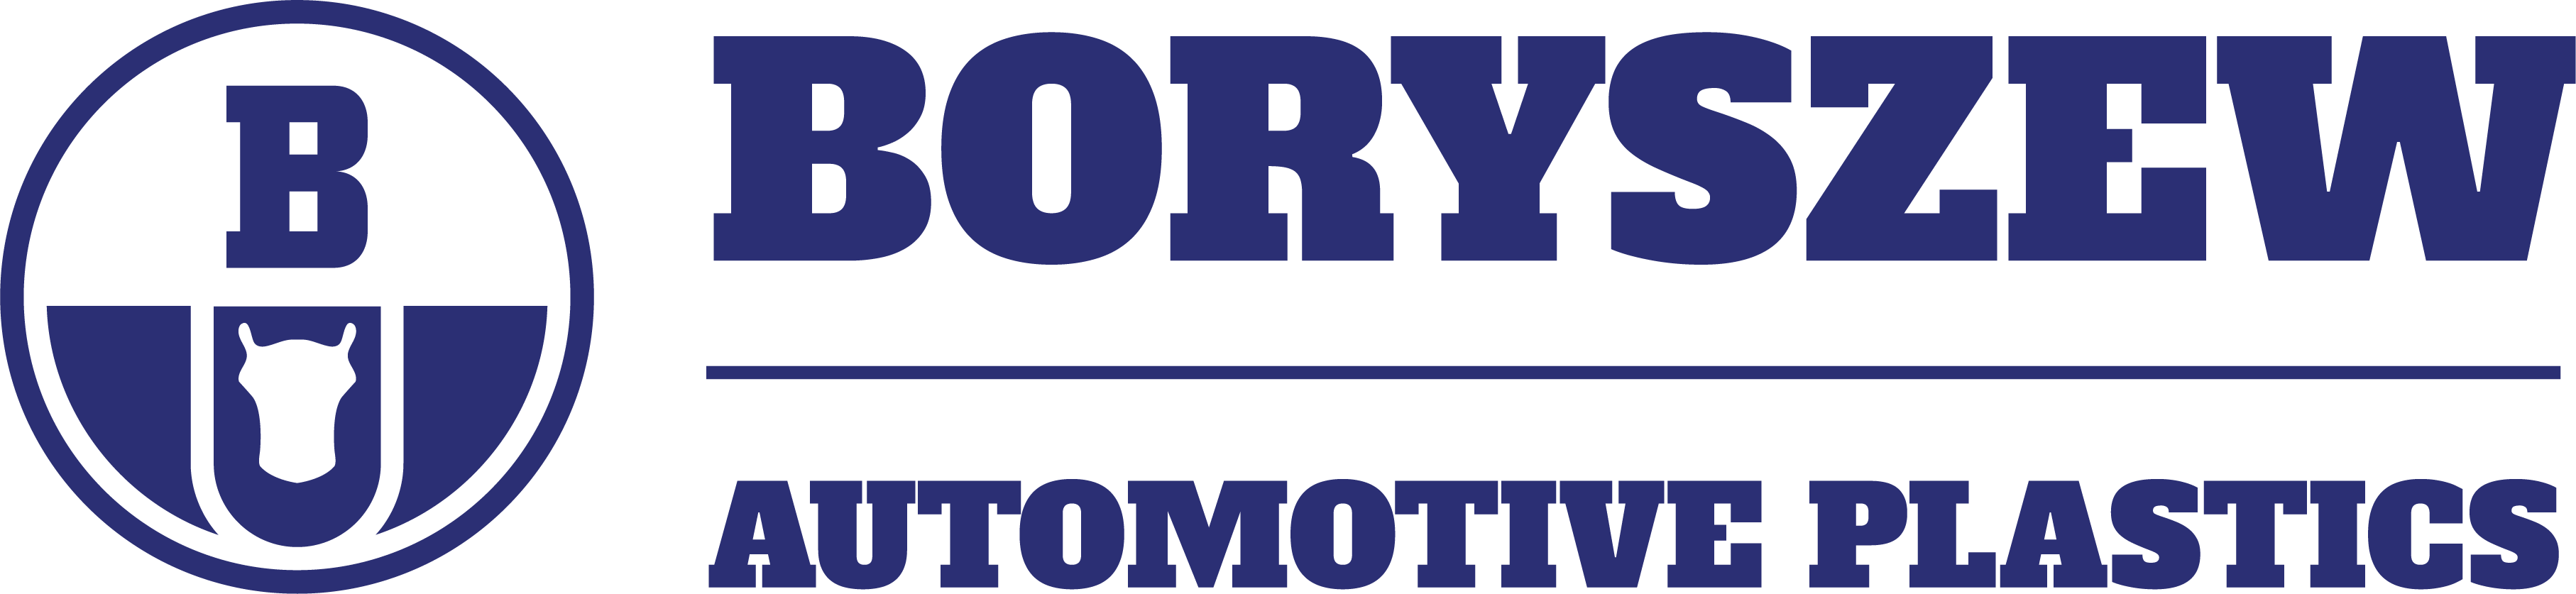 Boryszew Automotive Plastics